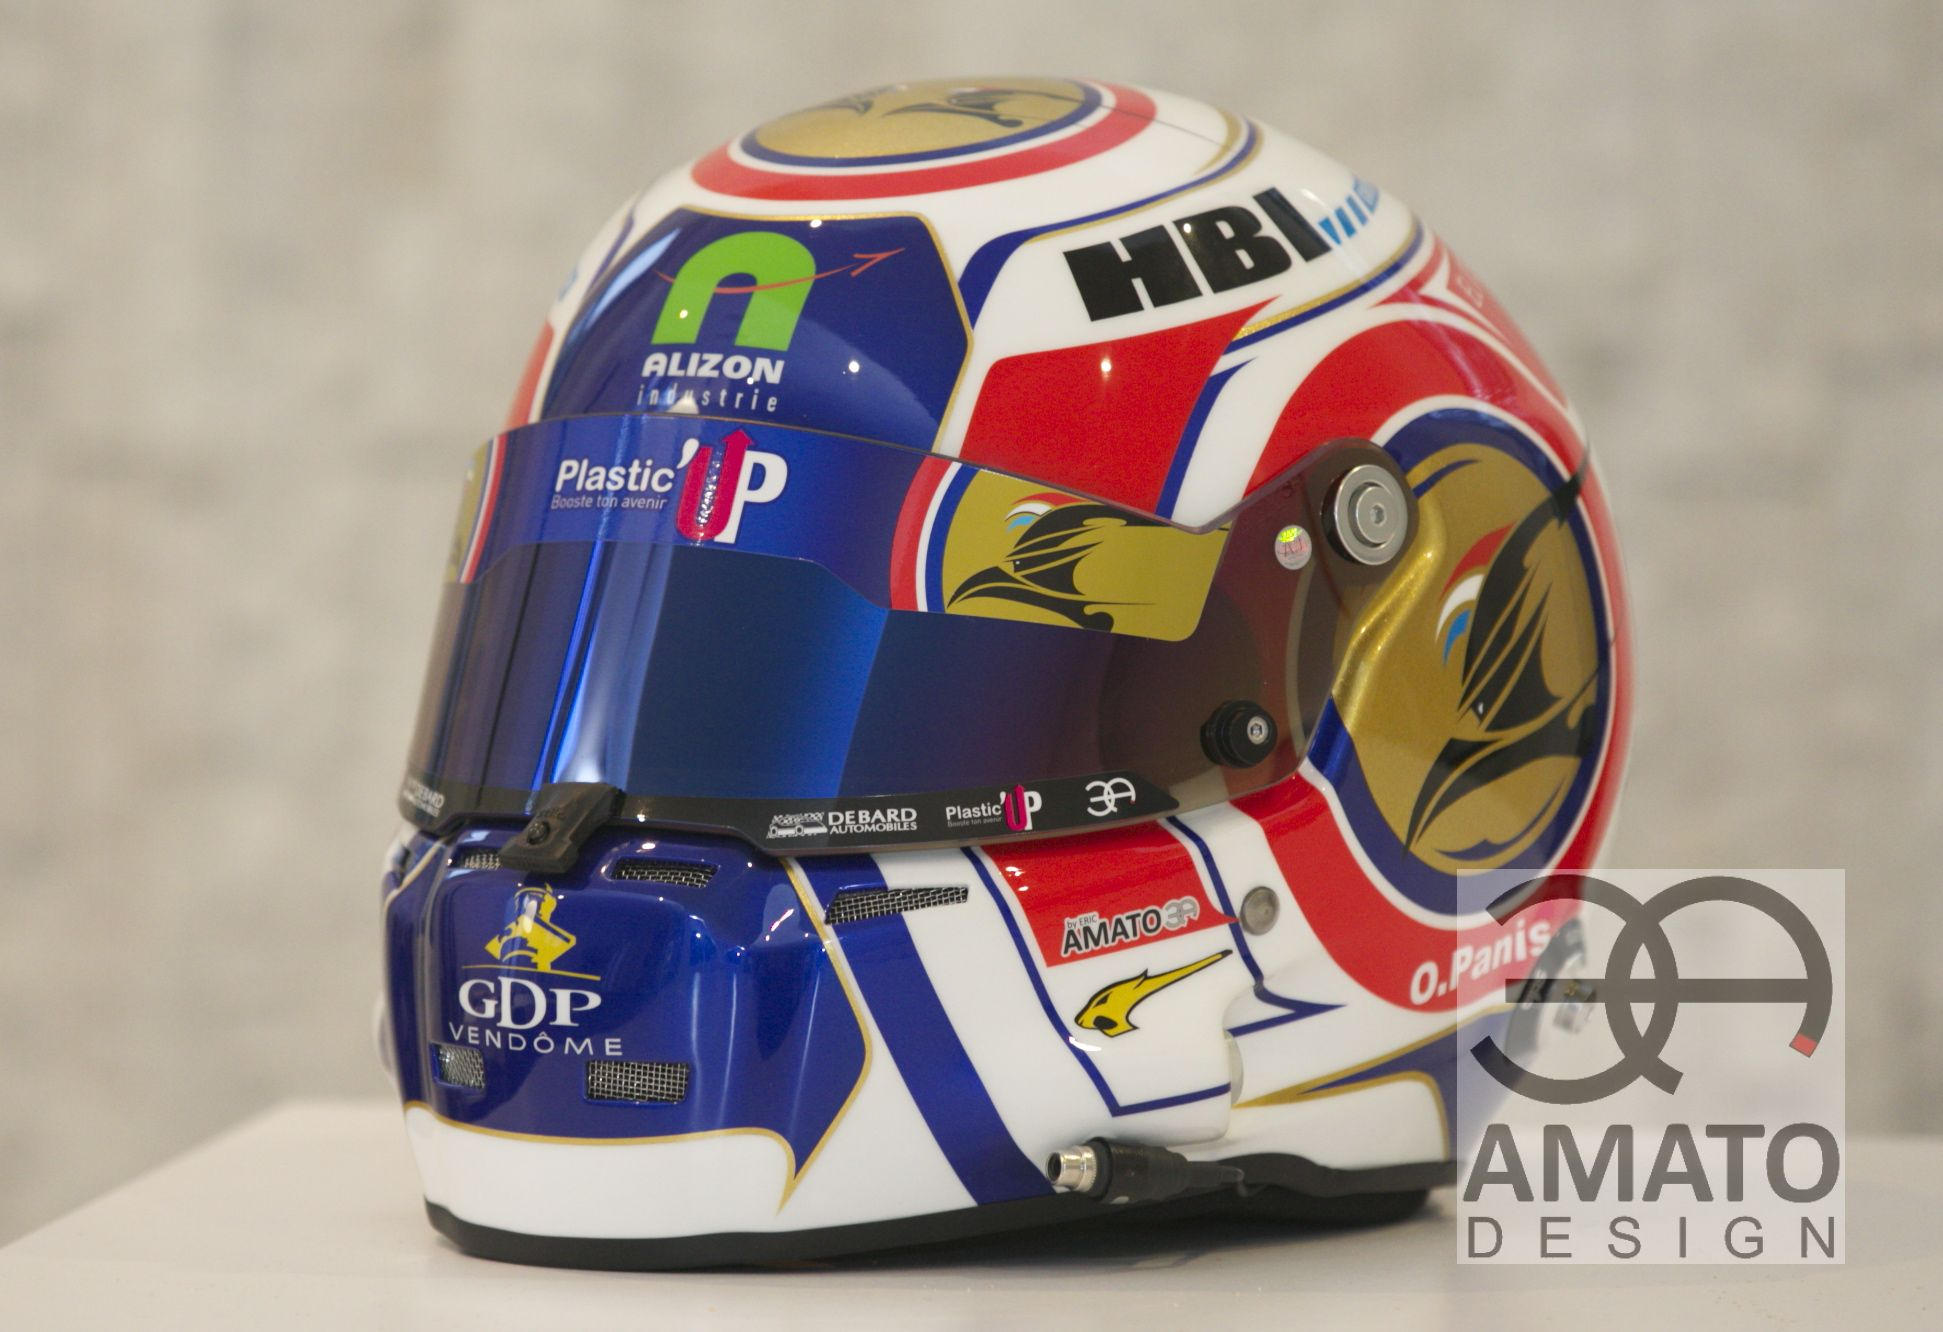 CASQUE AMATO DESIGN OLIVIER PANIS